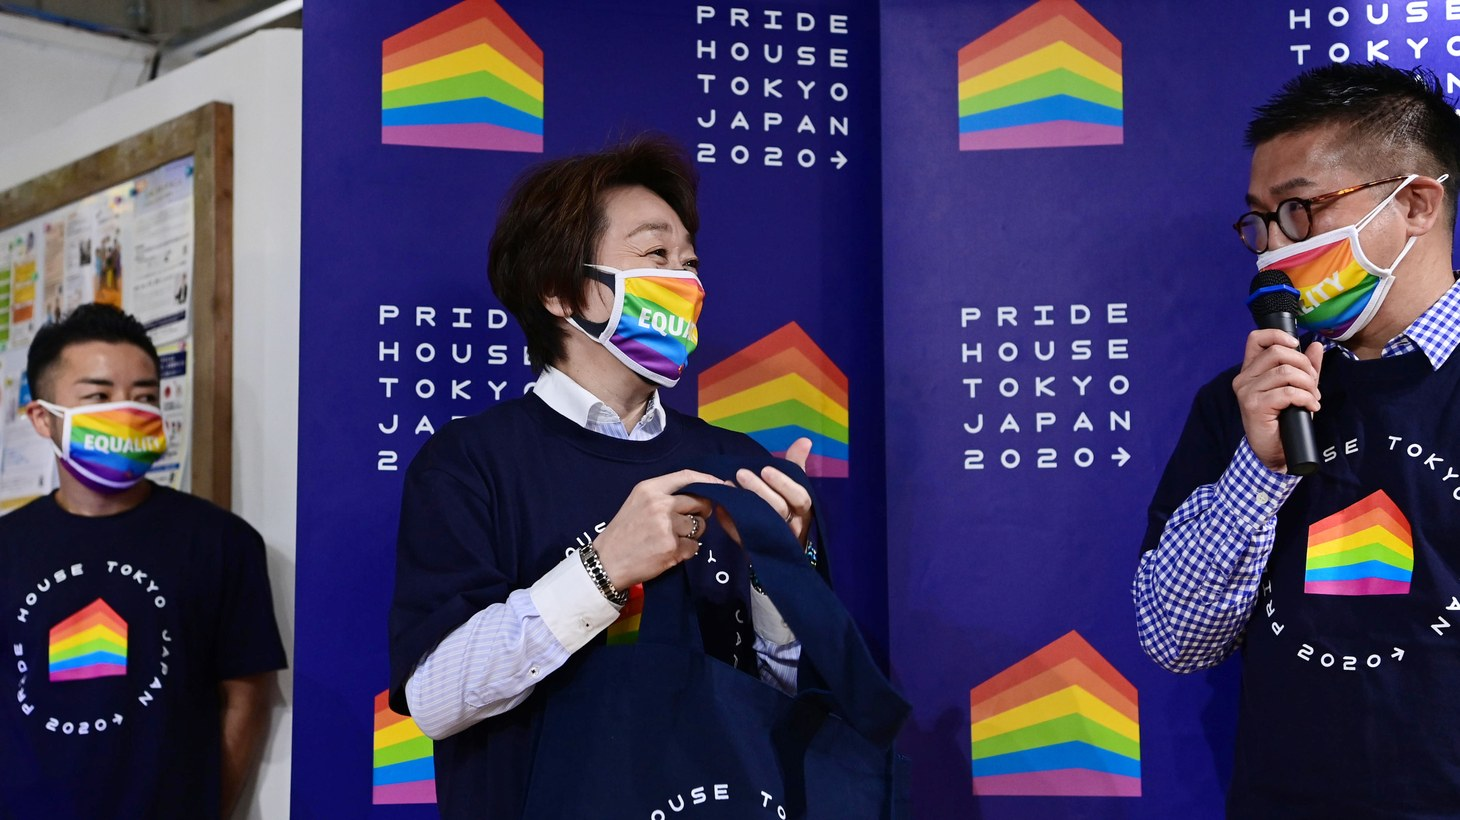 Seiko Hashimoto, President of Tokyo Organising Committee of the Olympic and Paralympic Games (TOCOG), visits Pride House Tokyo in Shinjuku Ward, Tokyo on April 27, 2021. The Pride House encourages LGBTQ athletes, their families and friends, spectators and local participants to enjoy the diversity-themed competition, while allowing the next generation of LGBTQ young people to gather with peace of mind.